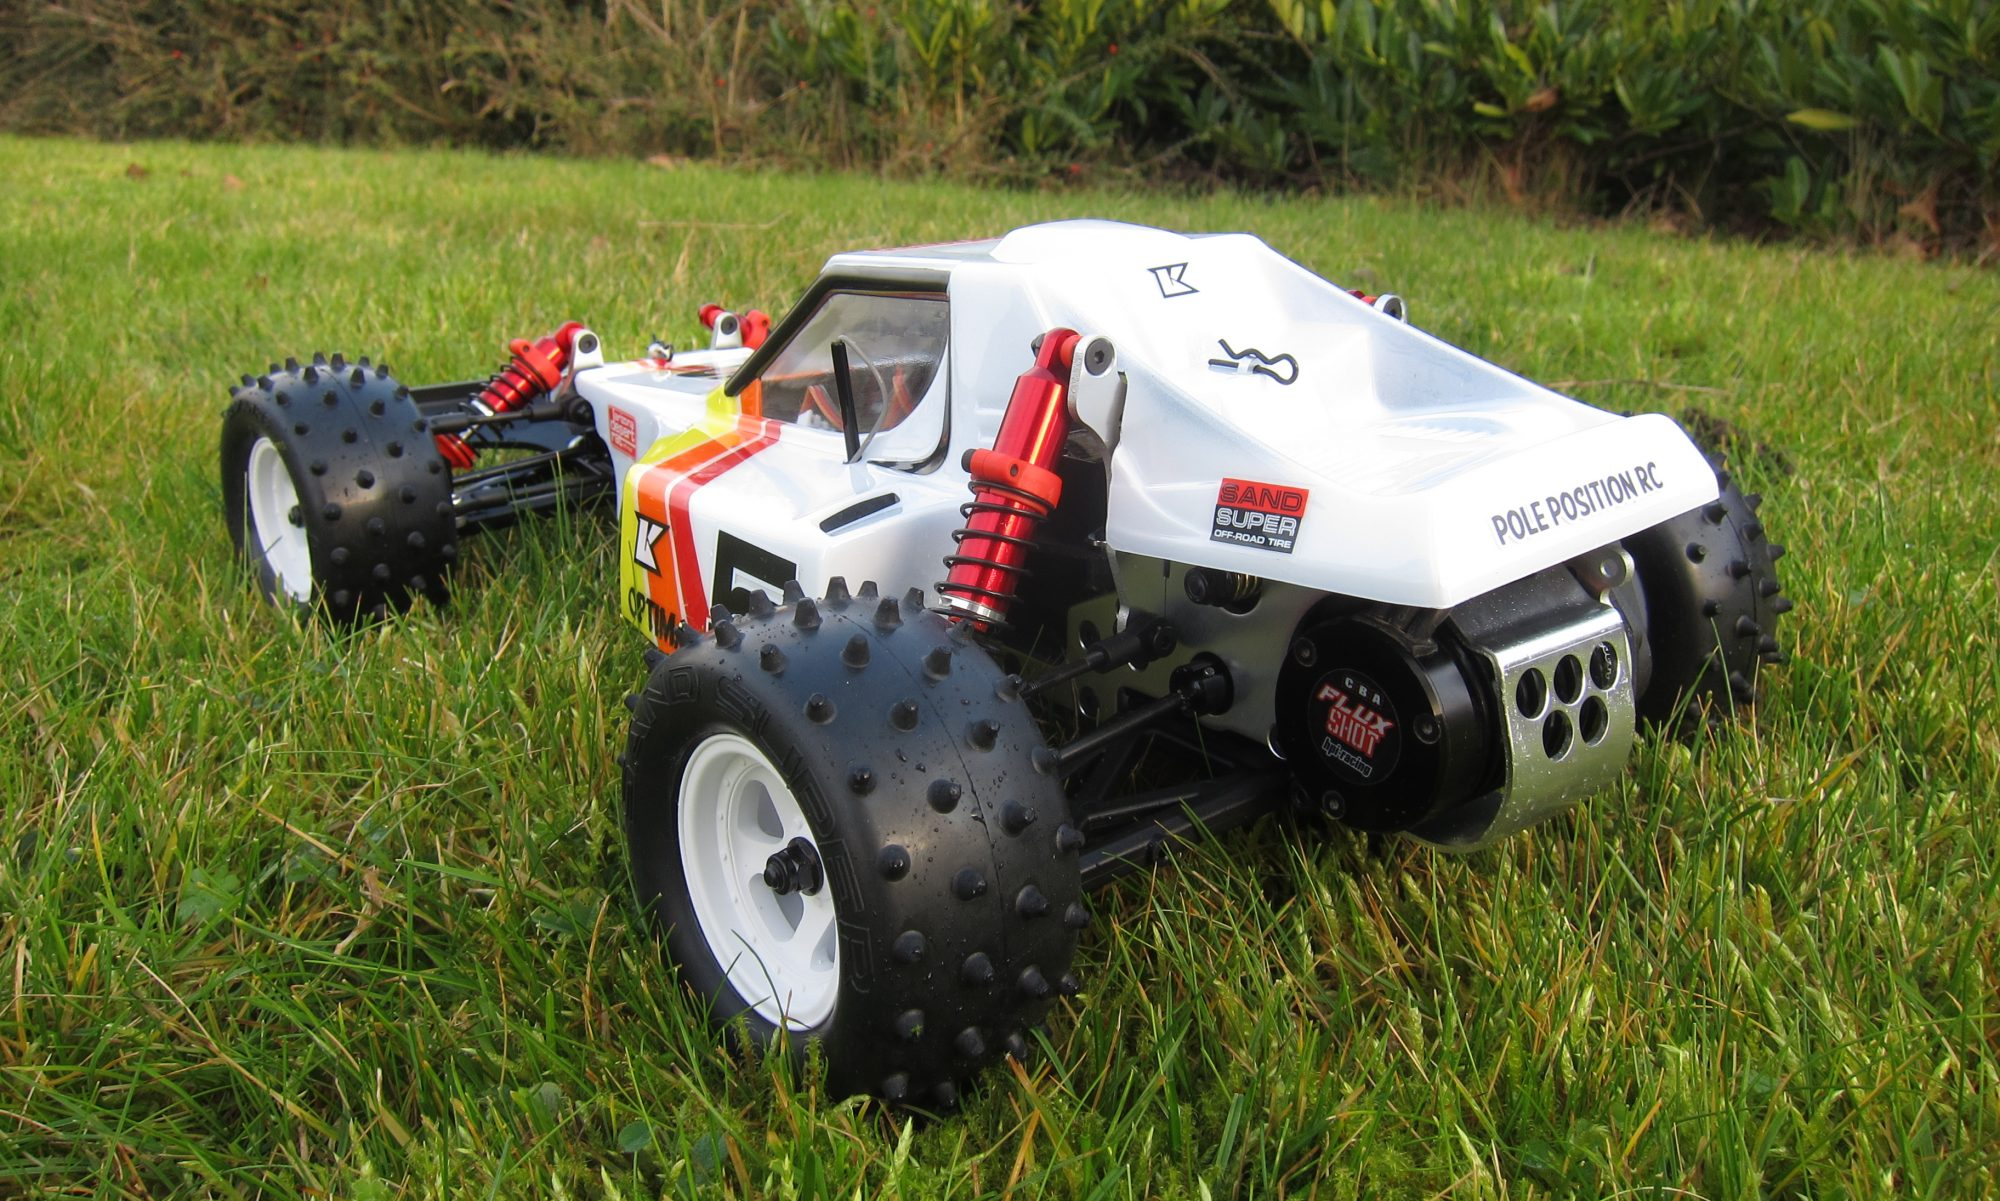 Pole Position RC